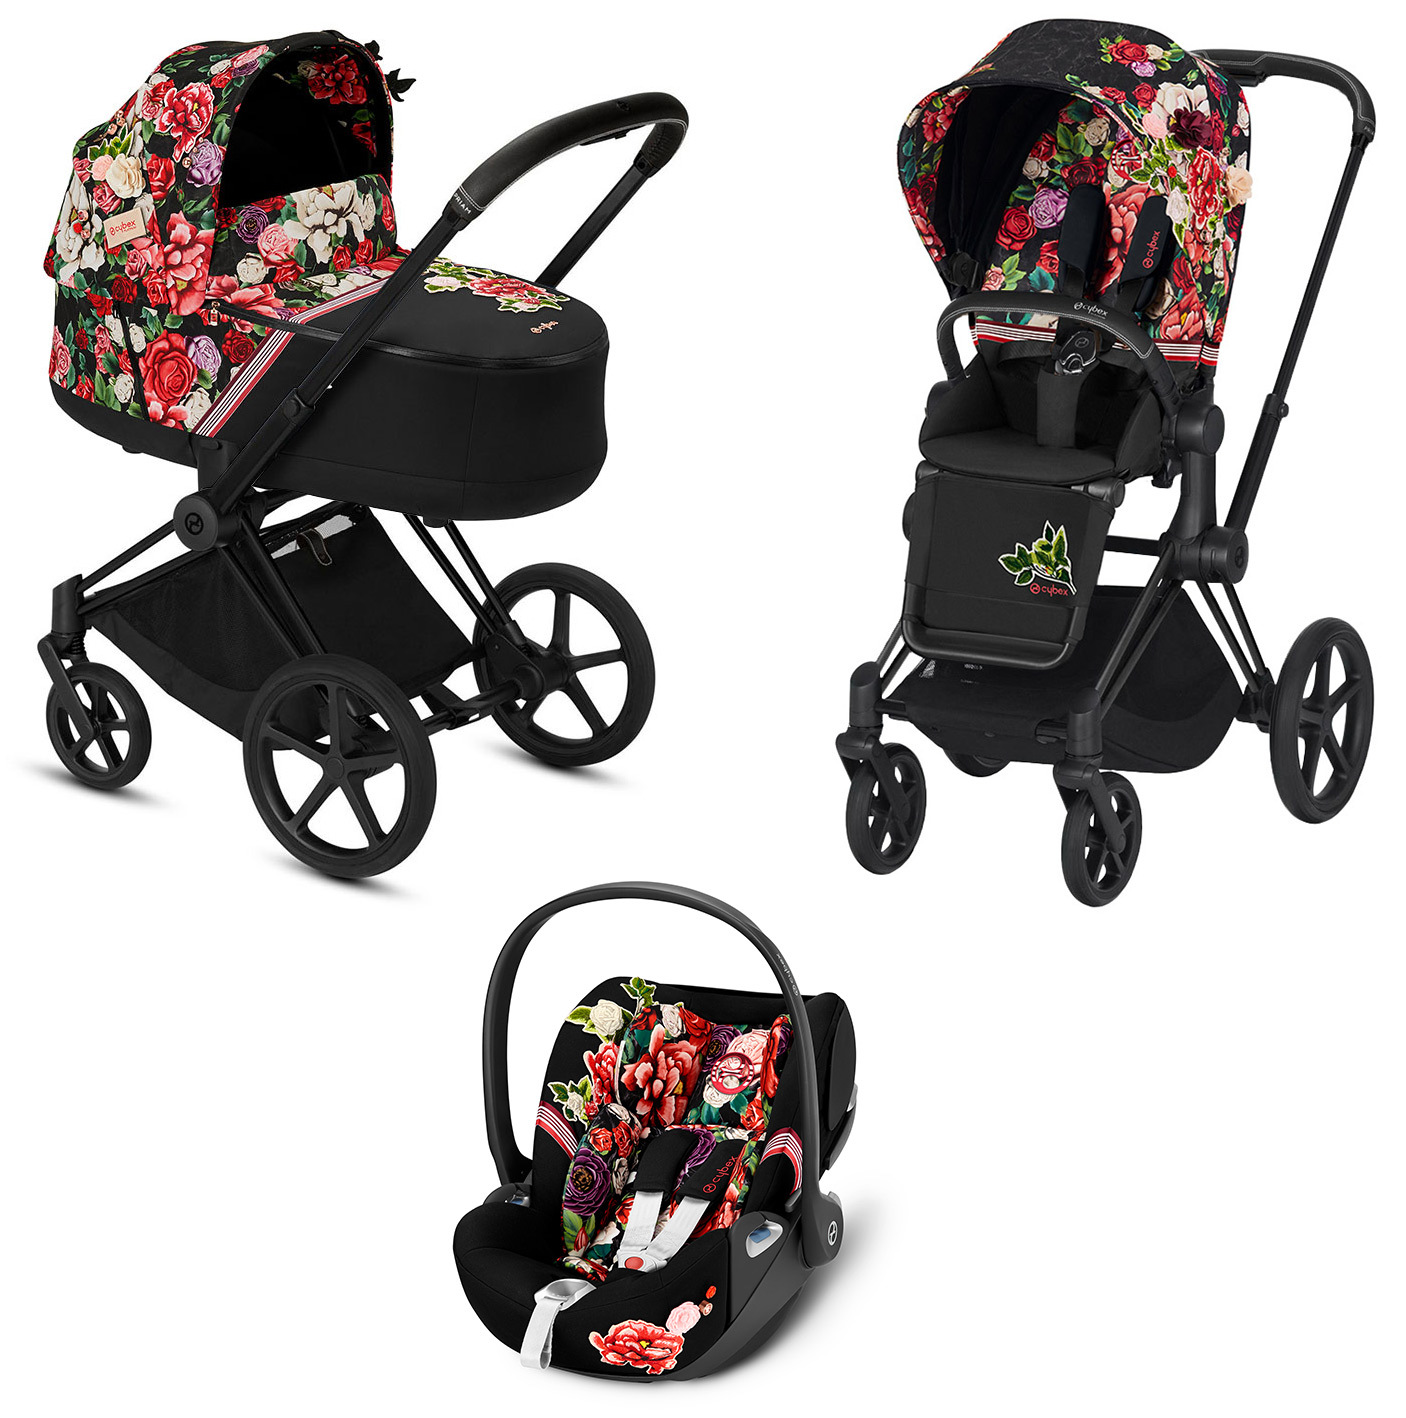 Цвета Cybex Priam 3 в 1 Детская коляска Cybex Priam III 3 в 1 FE Spring Blossom Dark шасси Matt Black cybex-priam-iii-3-in-1-spring-blossom-dark-matt-black.jpg